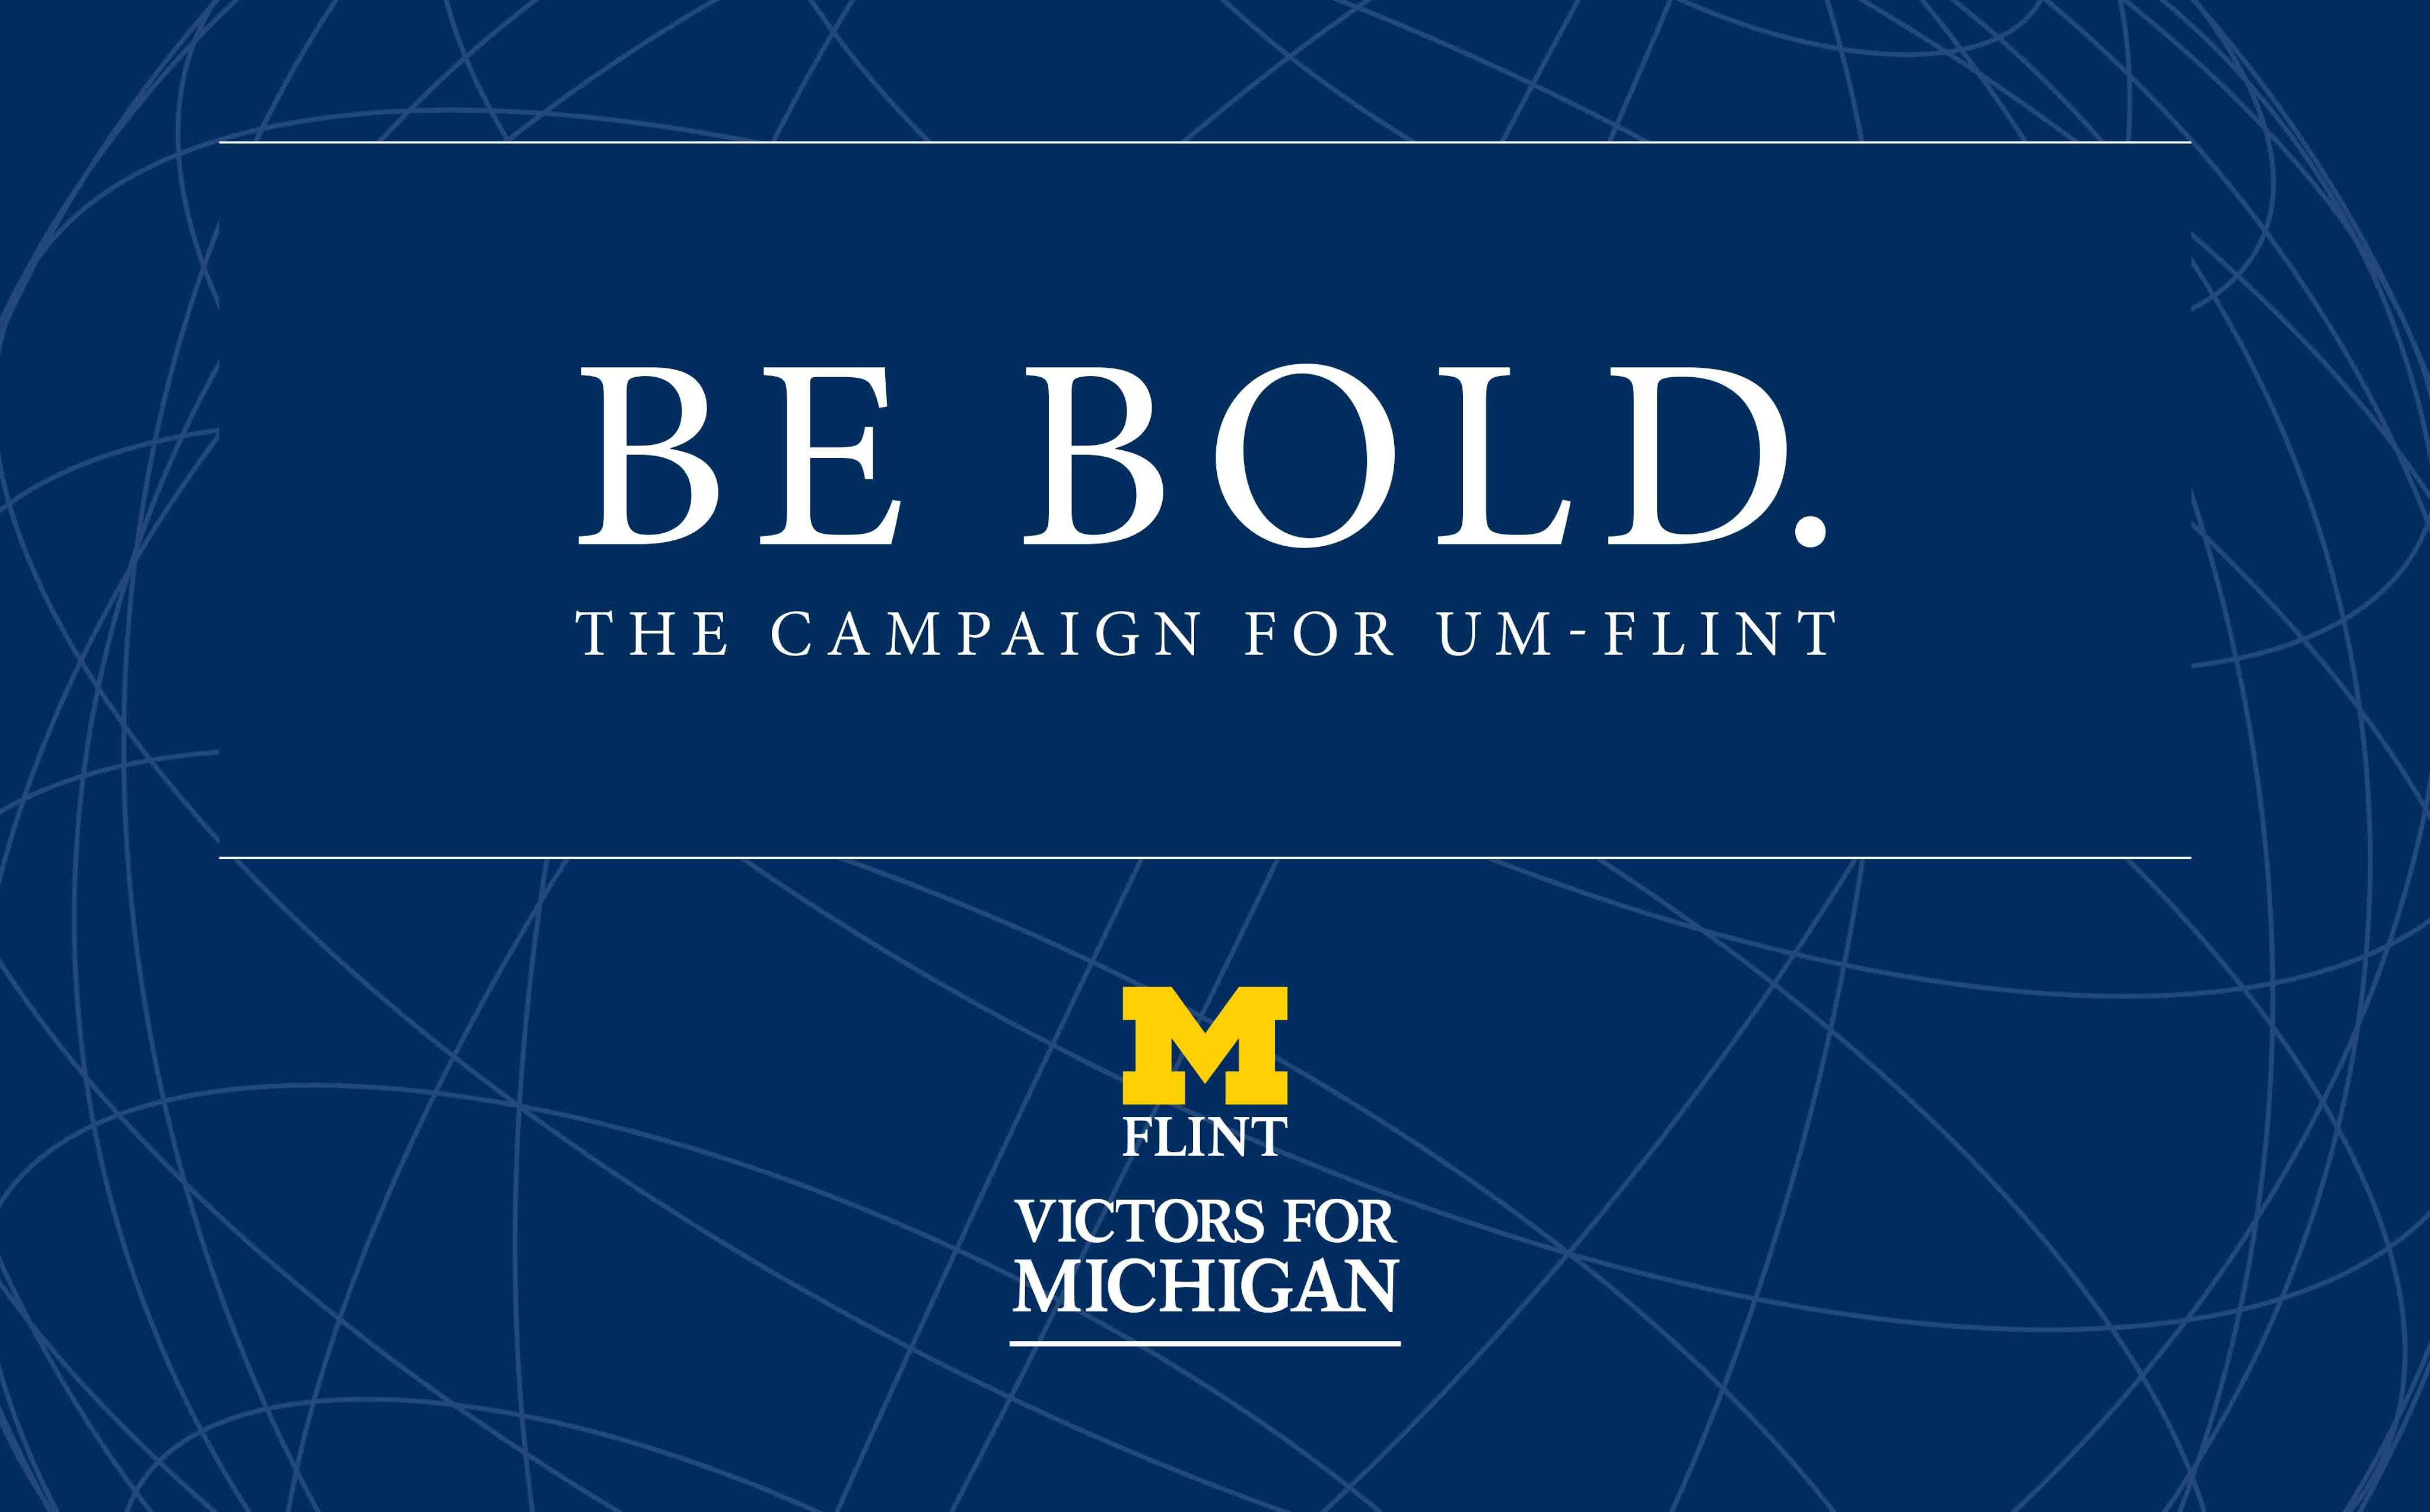 Be Bold. The Campaign for UM-Flint